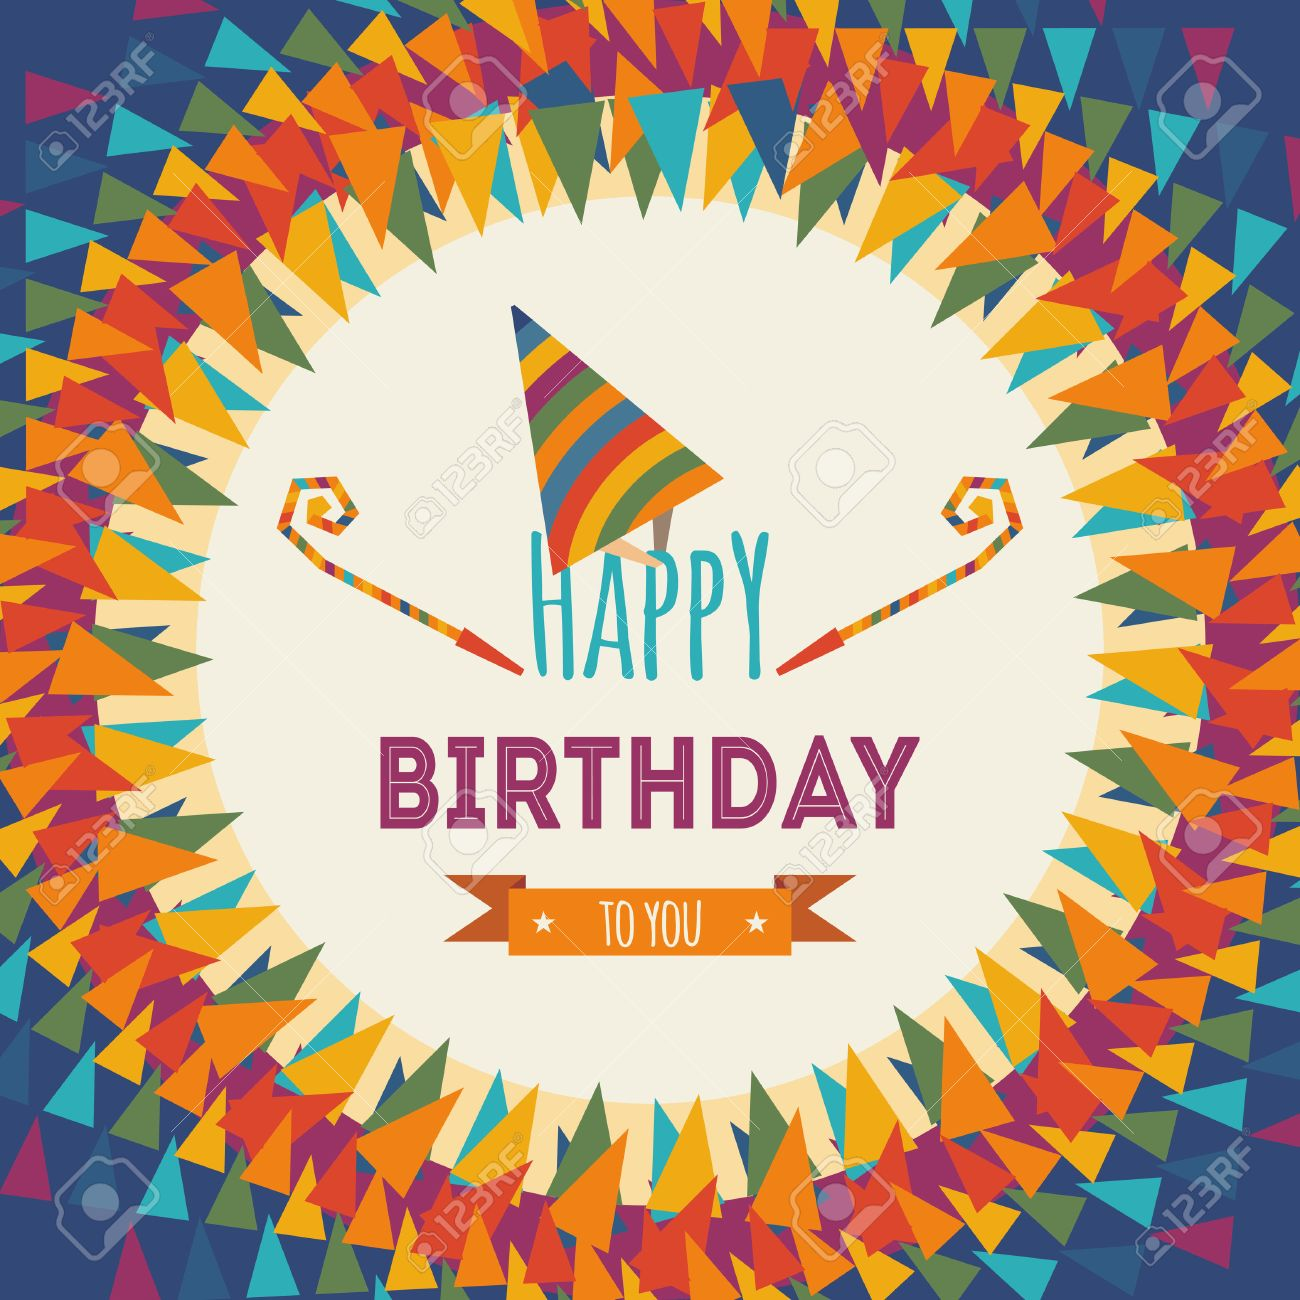 Happy Birthday Greeting Card On Colorful Geometric Abstract